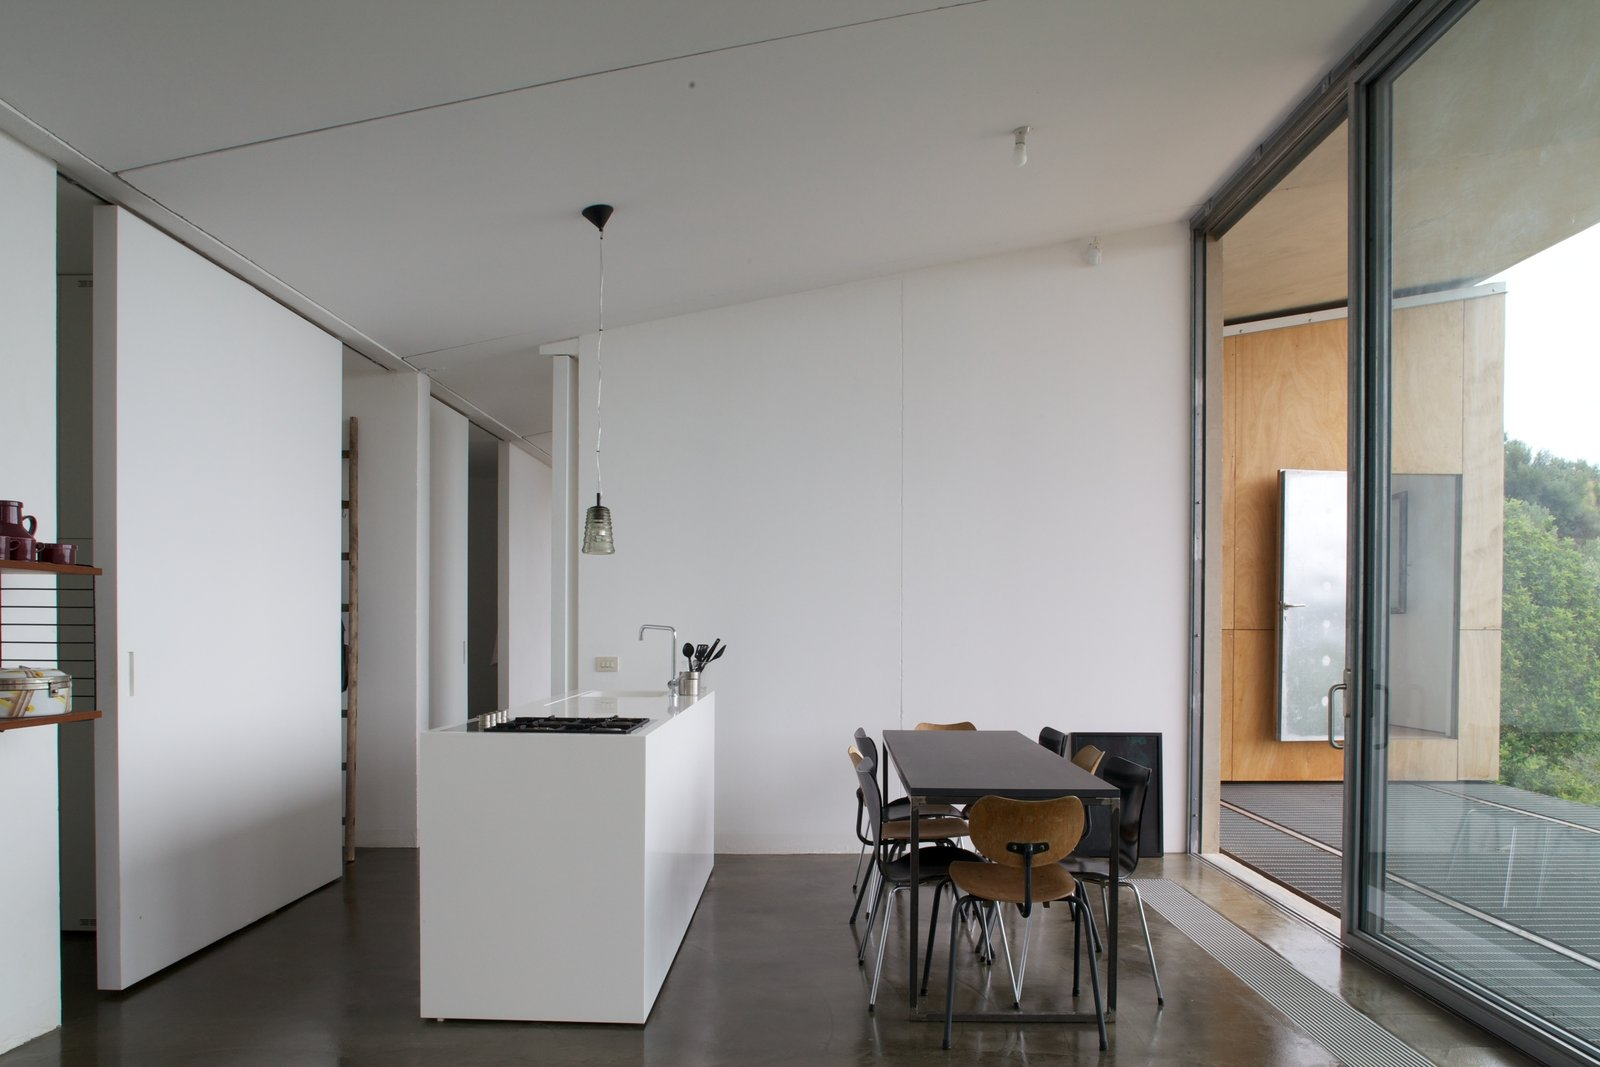 Kitchen, White Cabinet, Concrete Floor, Pendant Lighting, Cooktops, and Drop In Sink  Photo 7 of 12 in Stay in a Minimalist Villa in the Sicilian Countryside, Complete With Sea Views